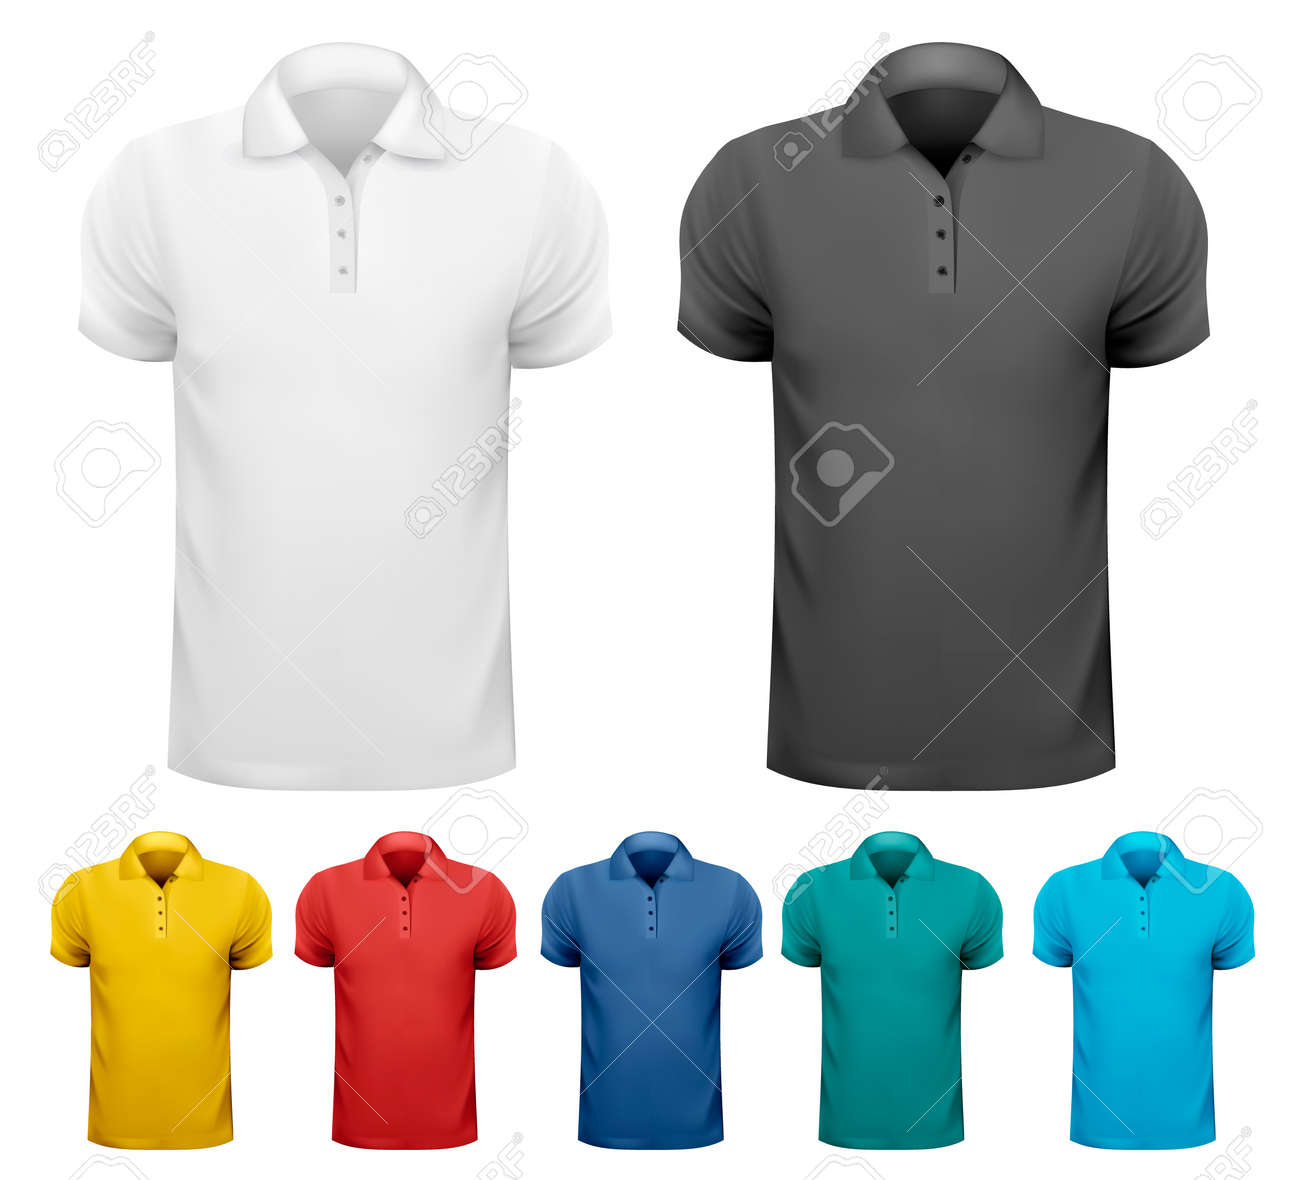 7deb9a10 Black and white and color men t- shirts. Design template. Vector  illustration Stock